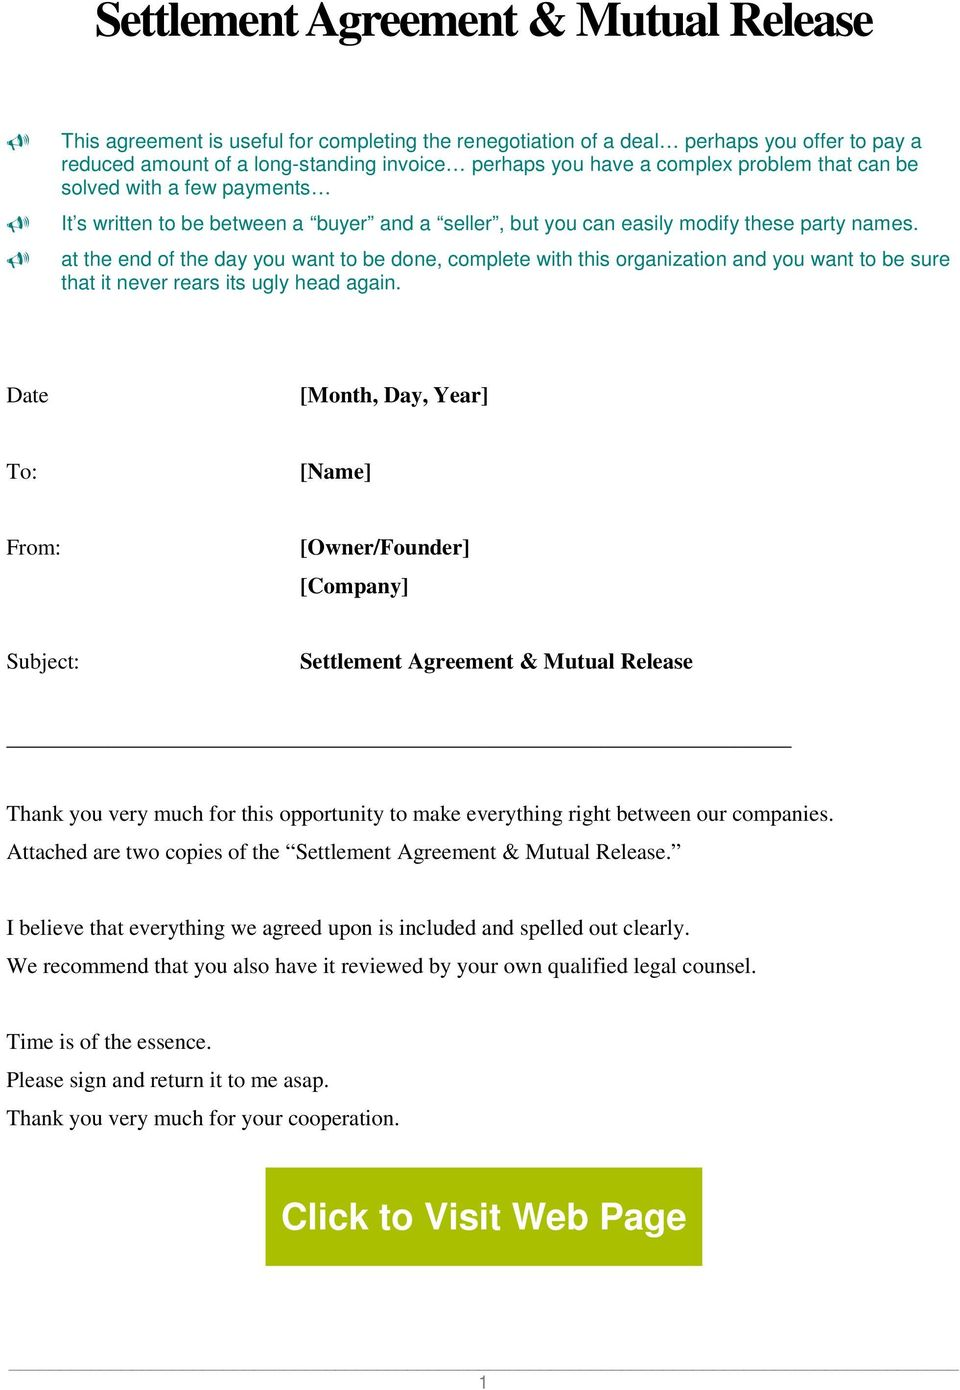 Settlement Agreement Mutual Release Pdf